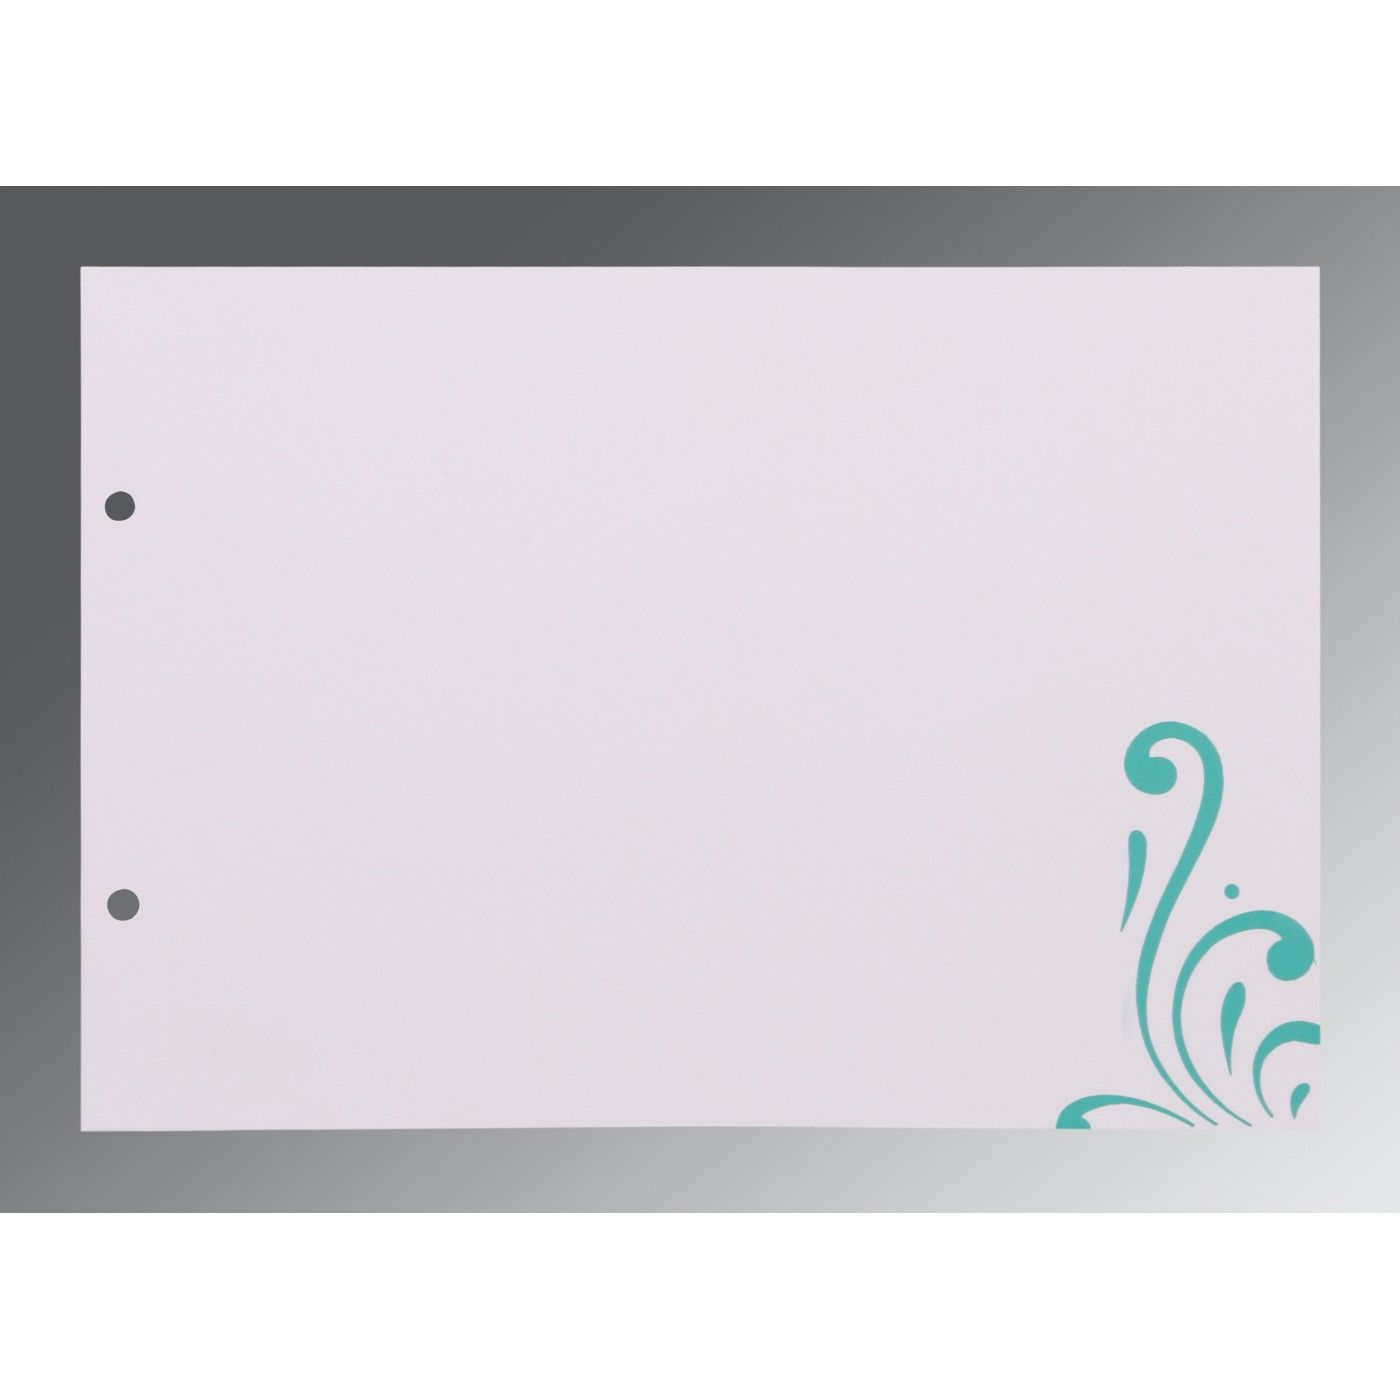 TURQUOISE SHIMMERY SCREEN PRINTED WEDDING CARD : CW-8223H - IndianWeddingCards